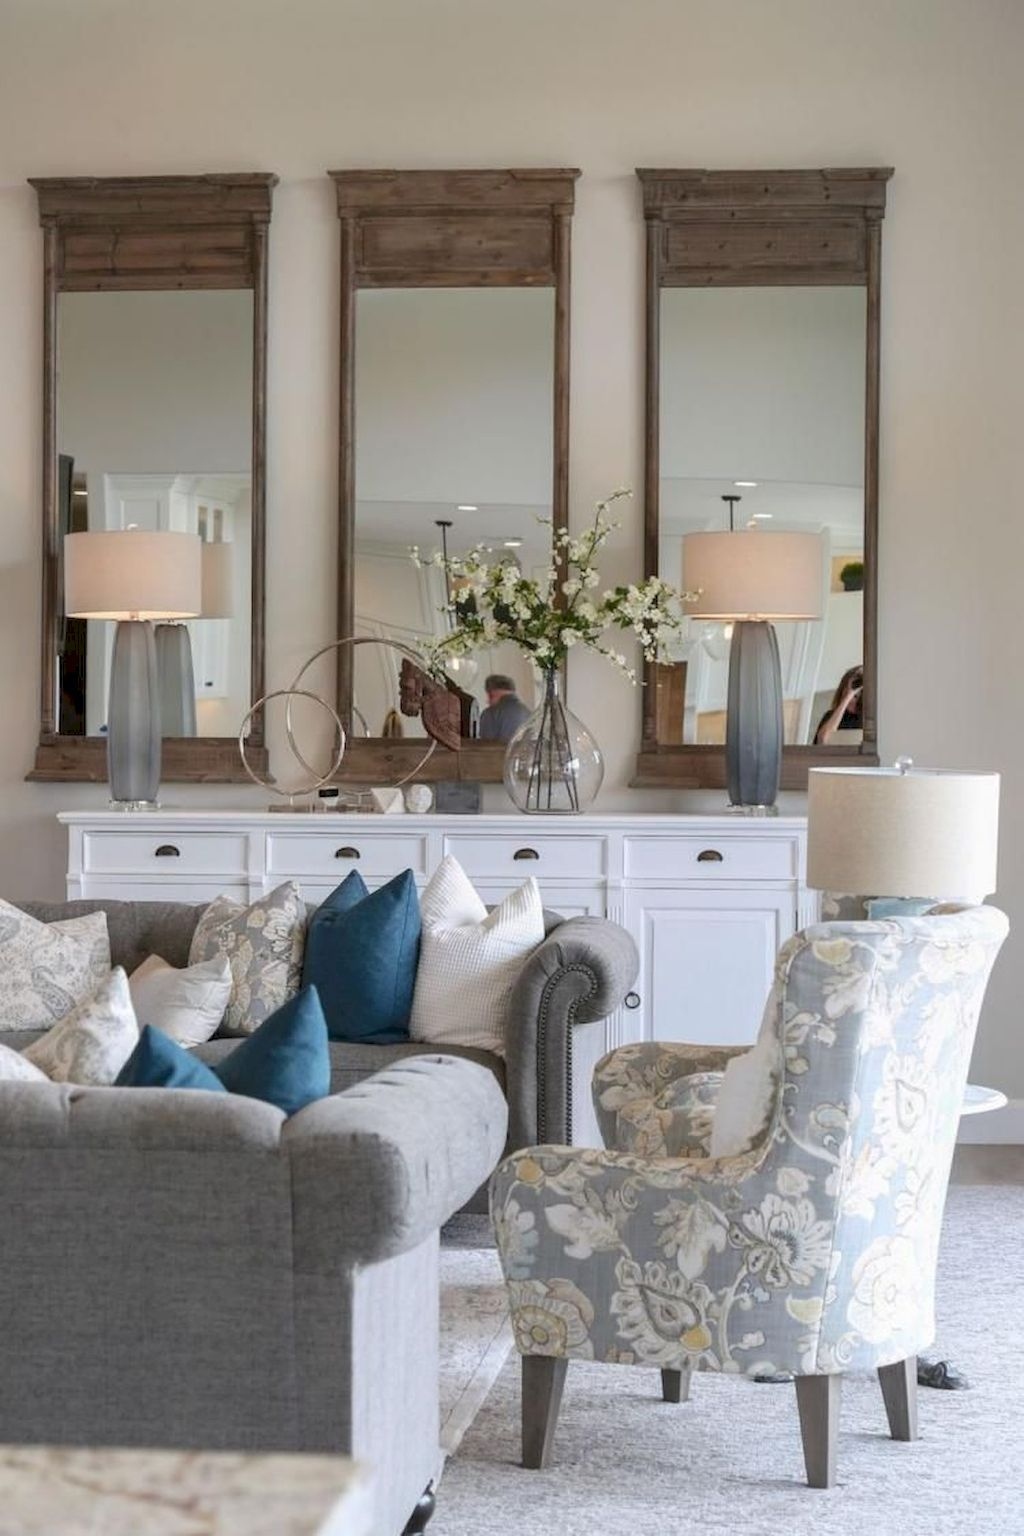 Awesome 60 Amazing French Country Living Room Decor Ideas So